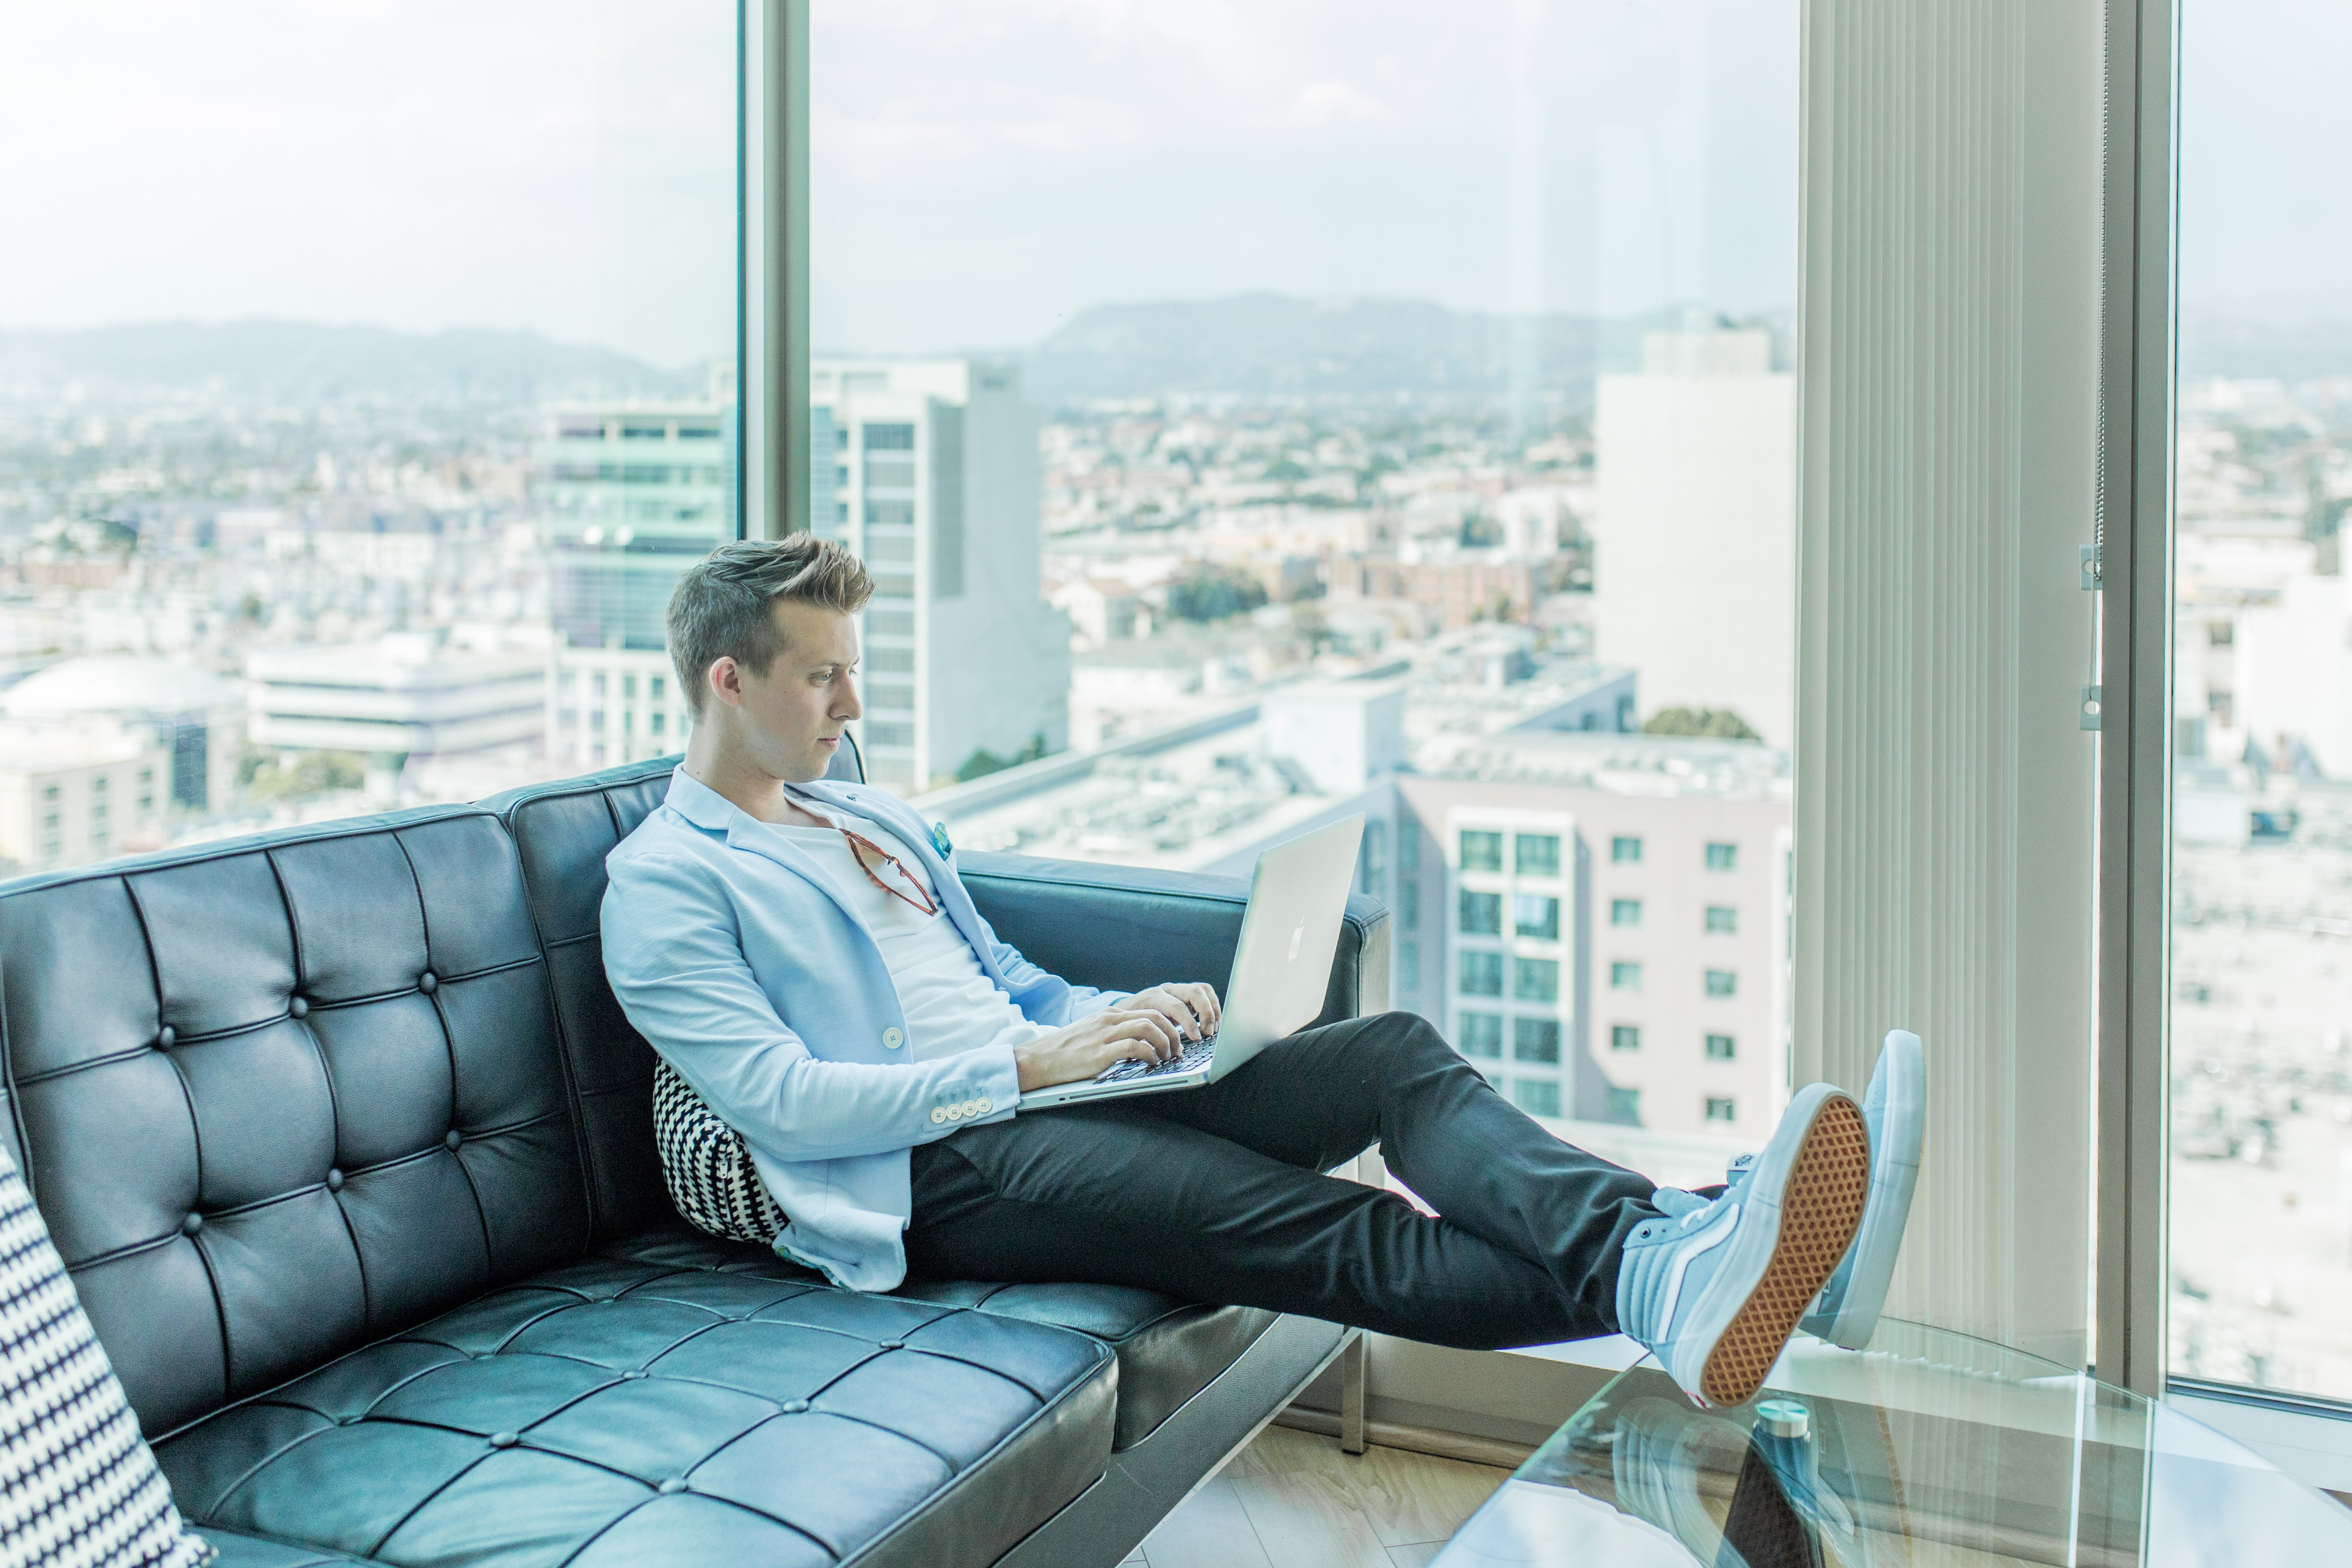 Man sitting on a sofa with a laptop | Source: Unsplash